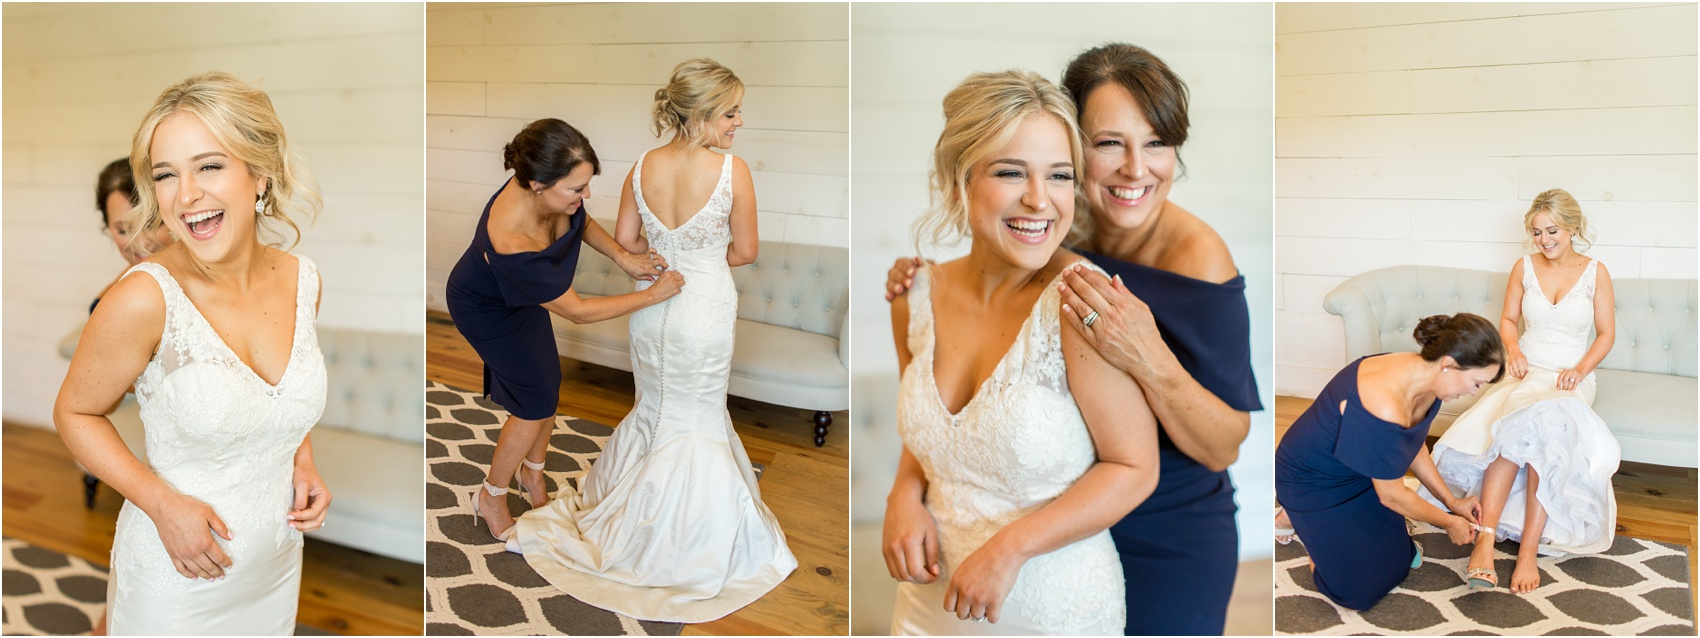 Bleckley Wedding- Sneak Peek-16.jpg